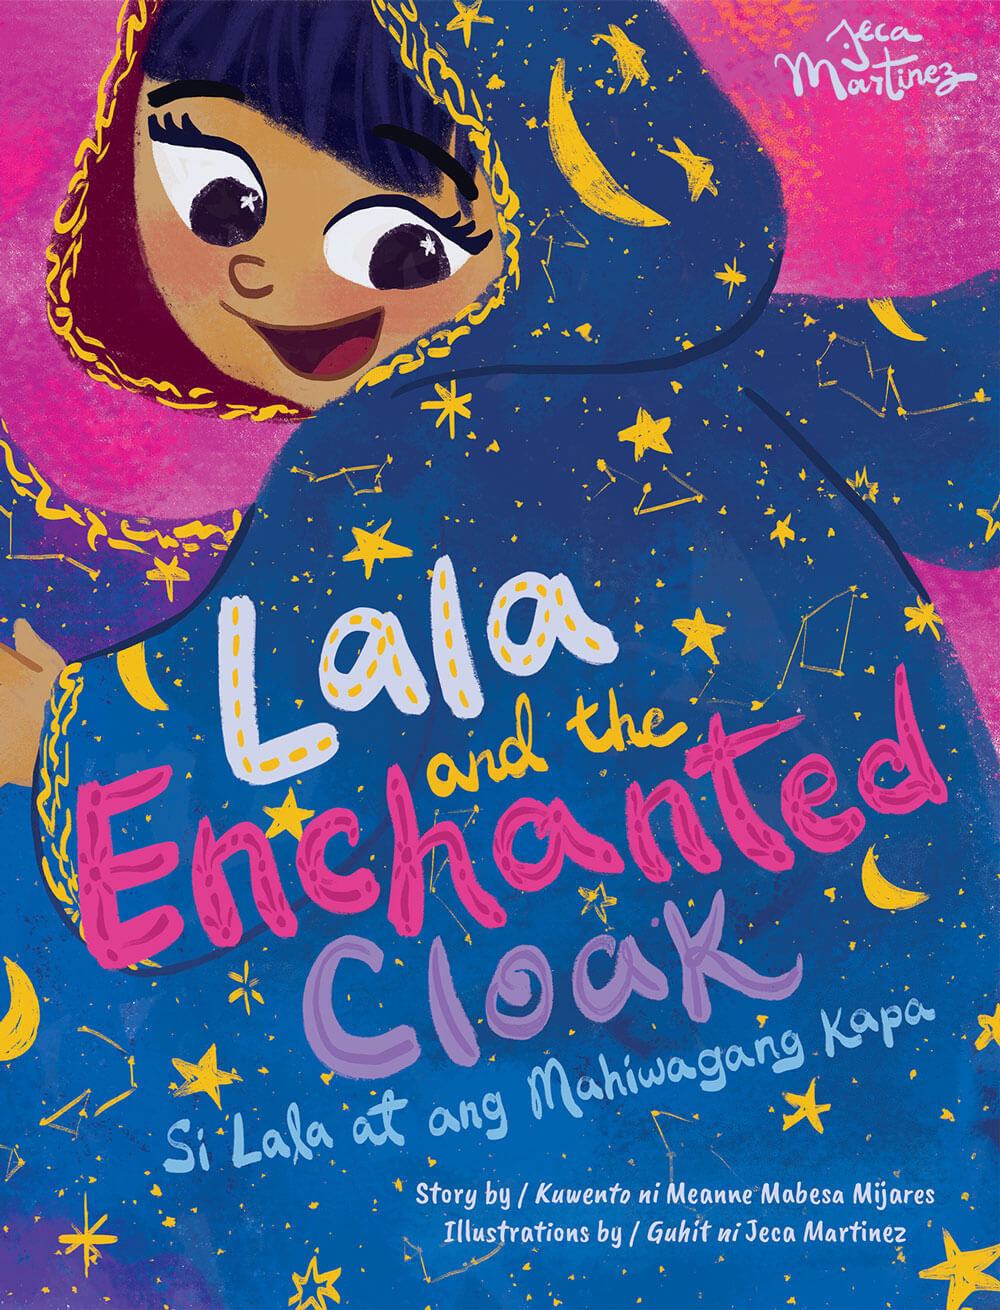 Children's Book Cover Illustration of Lala and the Enchanted Cloak for Vibal Publishing by Jeca Martinez